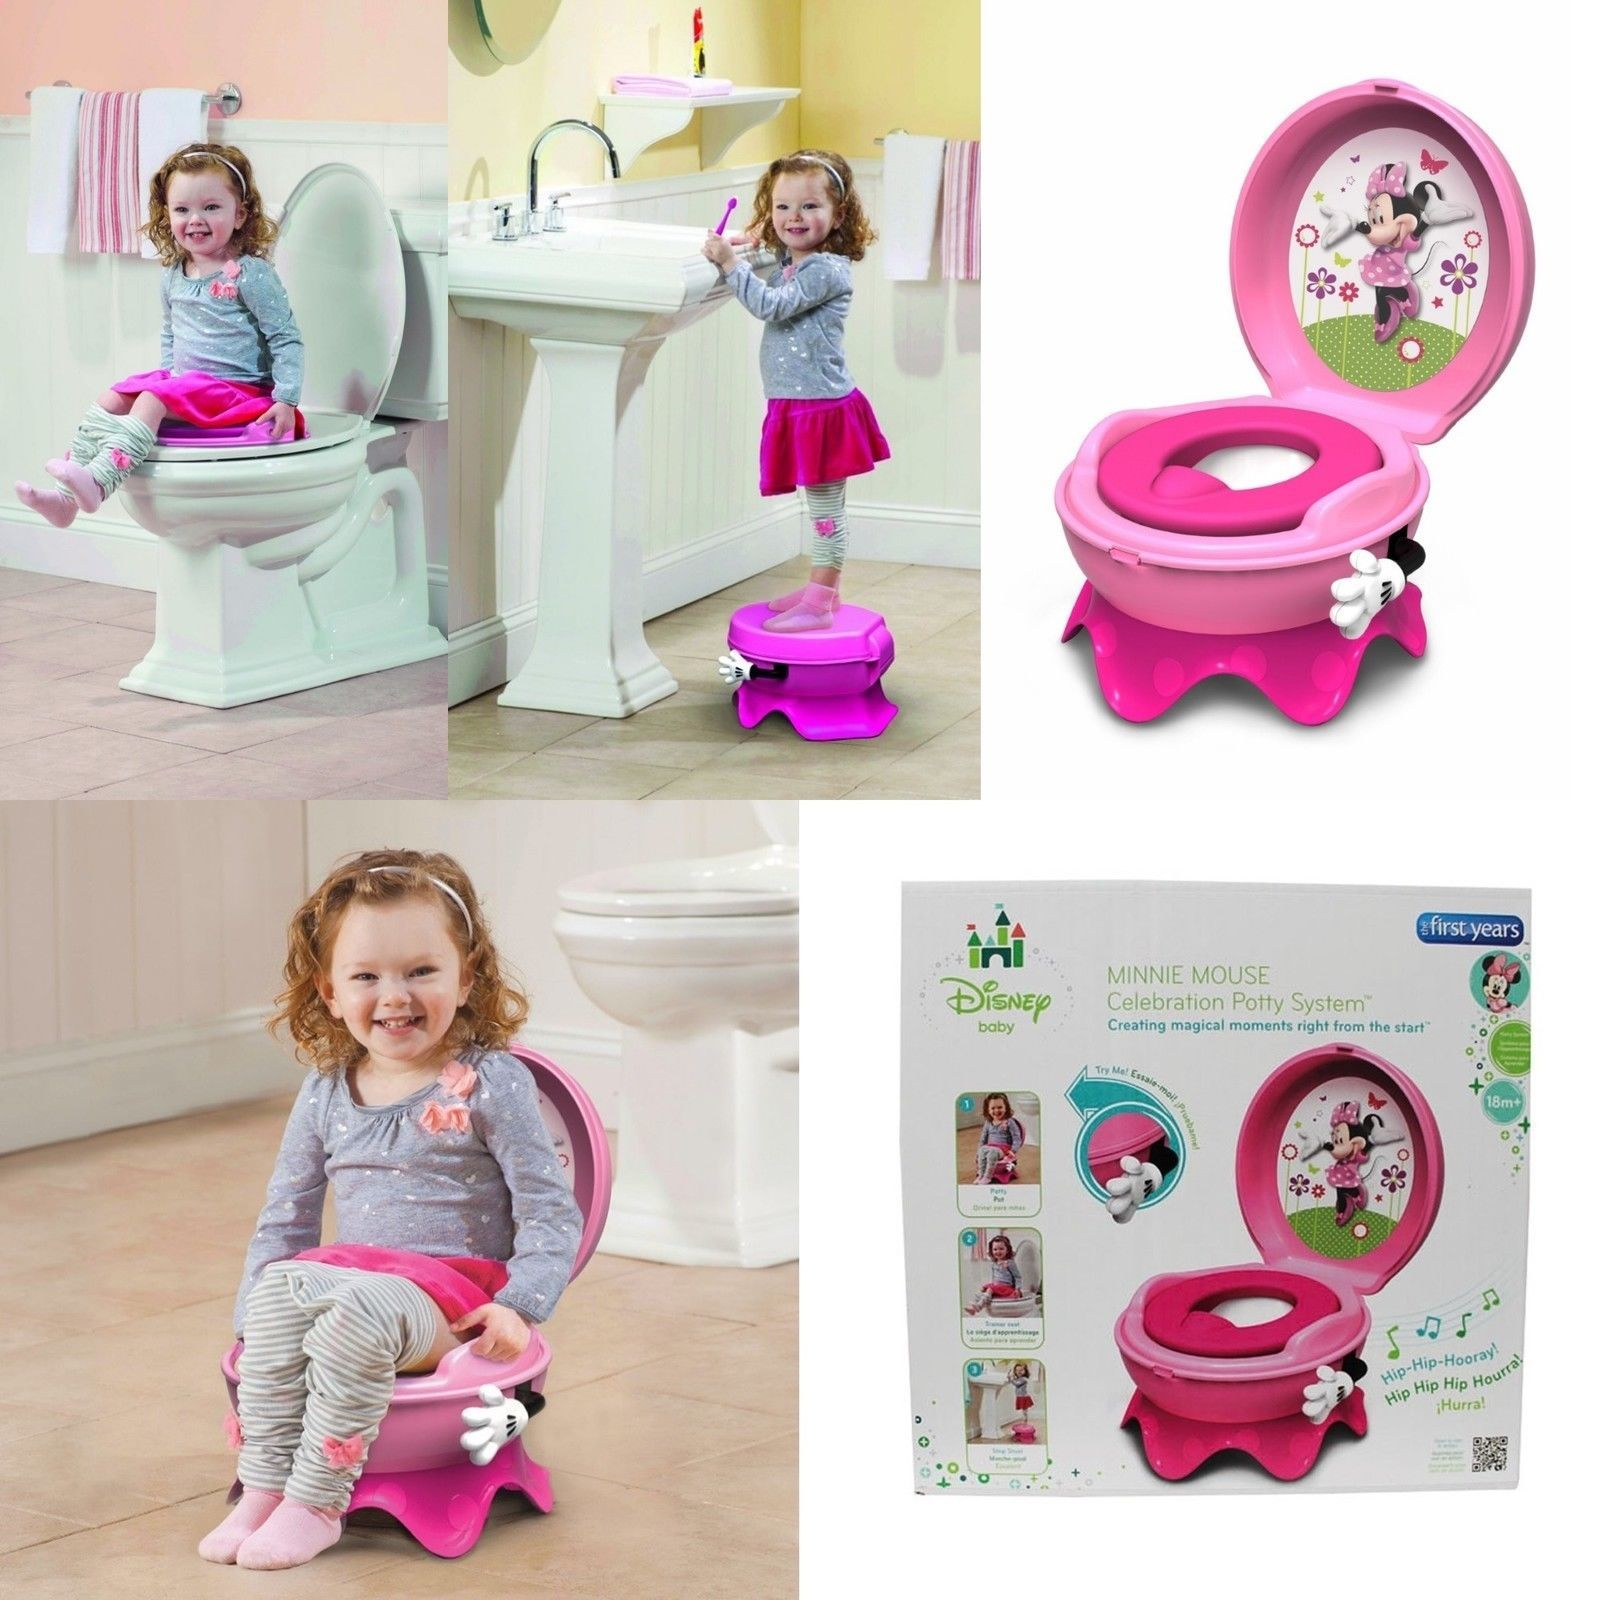 Minnie Mouse Portable Potty Training Toilet Seat 3 In 1 System For